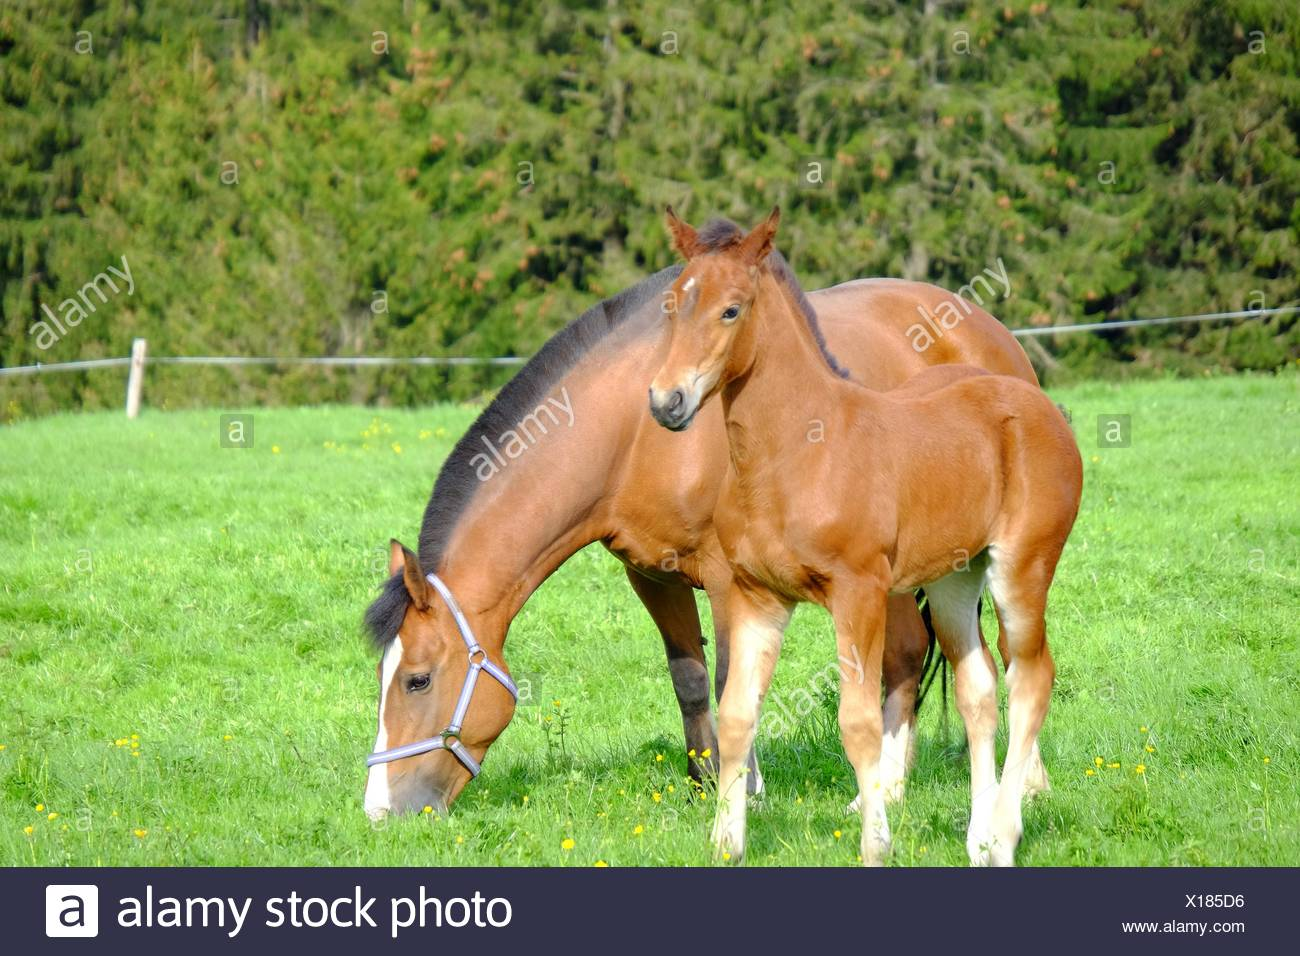 Horse With Foul Grazing On Grassy Field - Stock Image